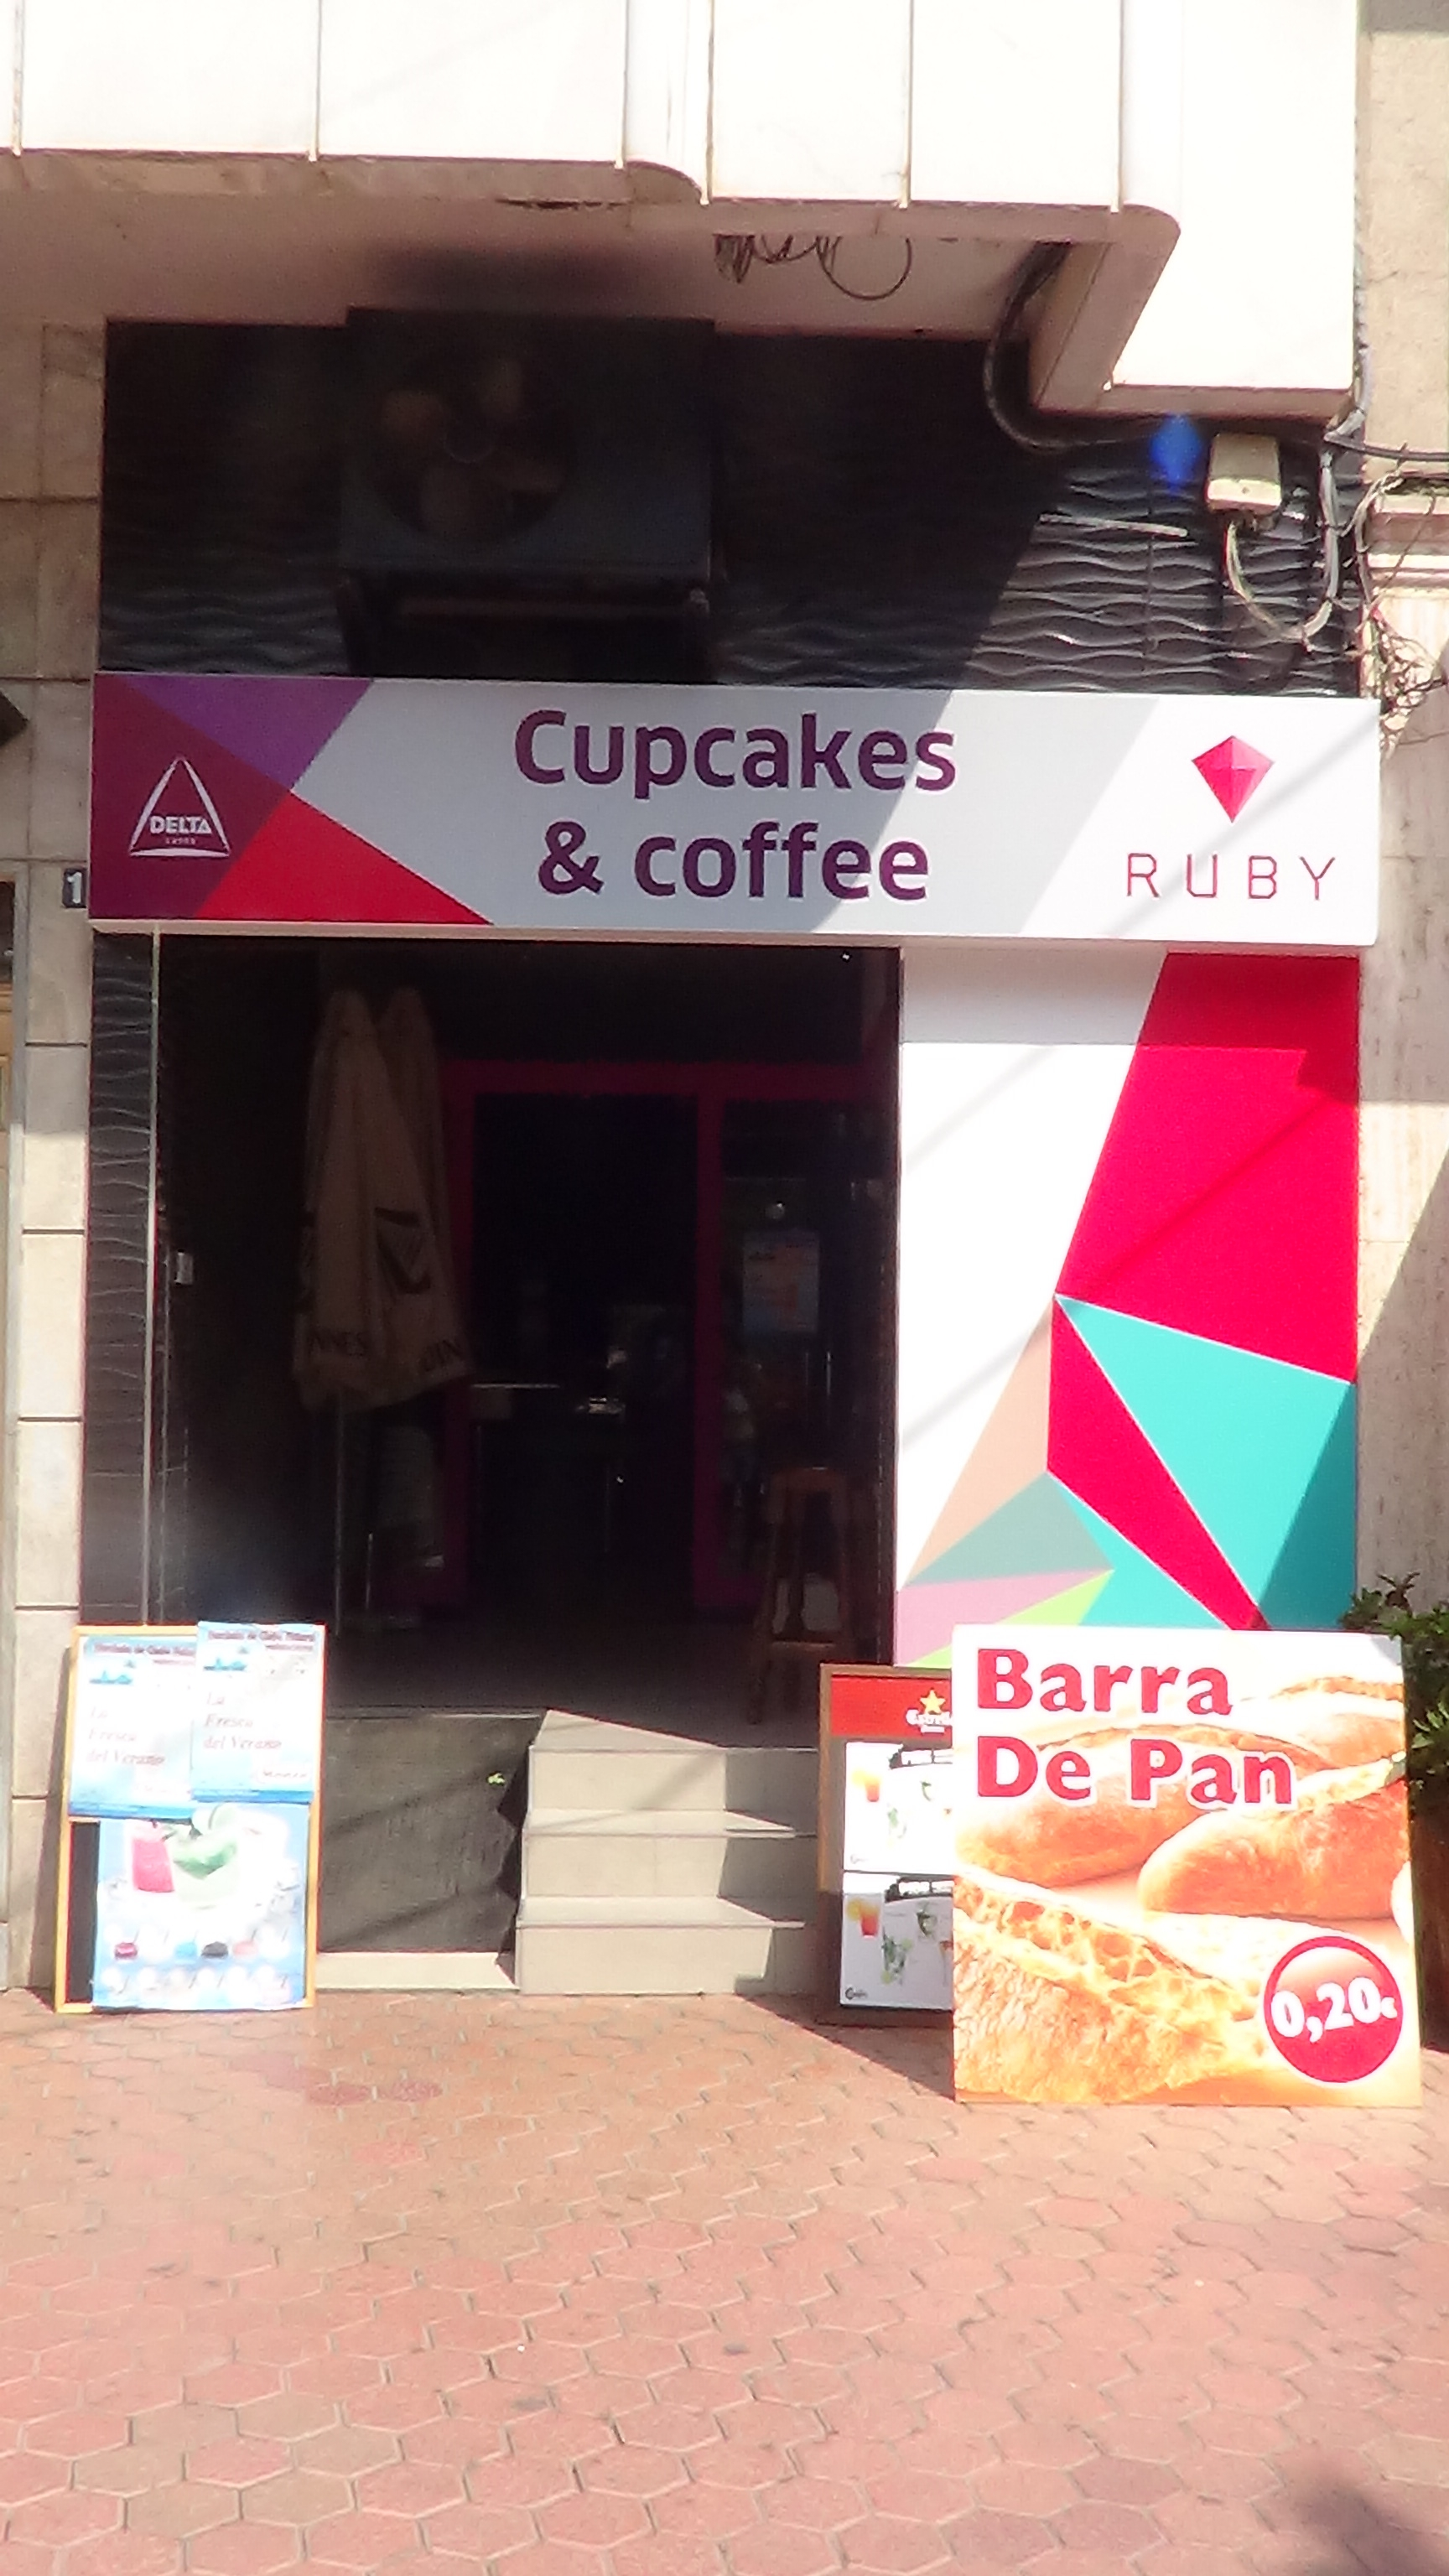 Cupcakes & Coffee